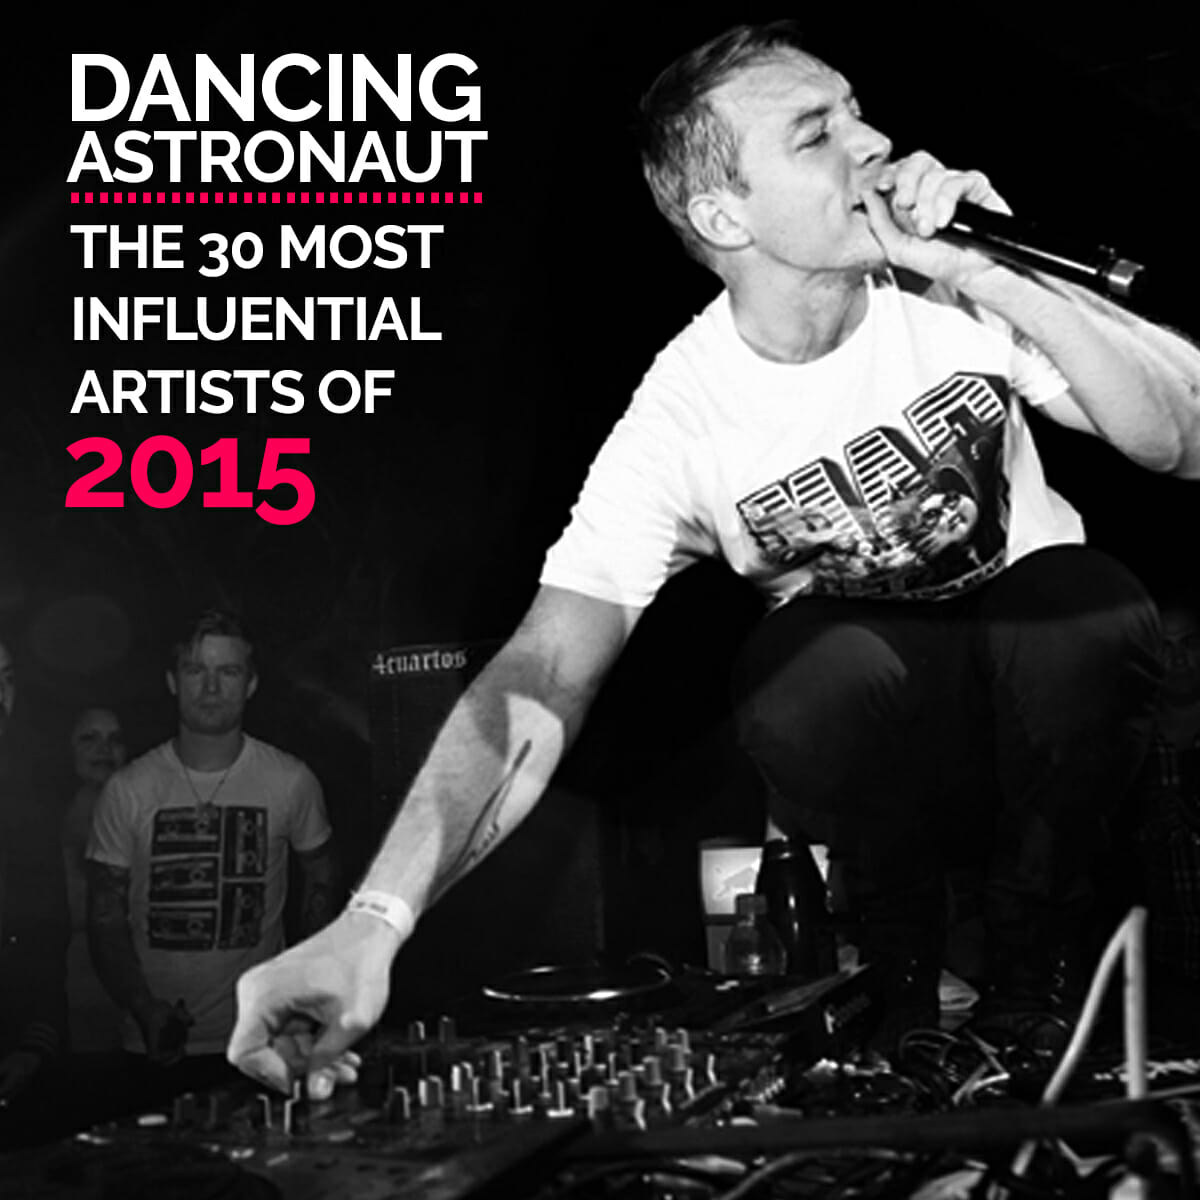 Dancing Astronaut's 30 Most Influential Artists of 2015Eoy Influential